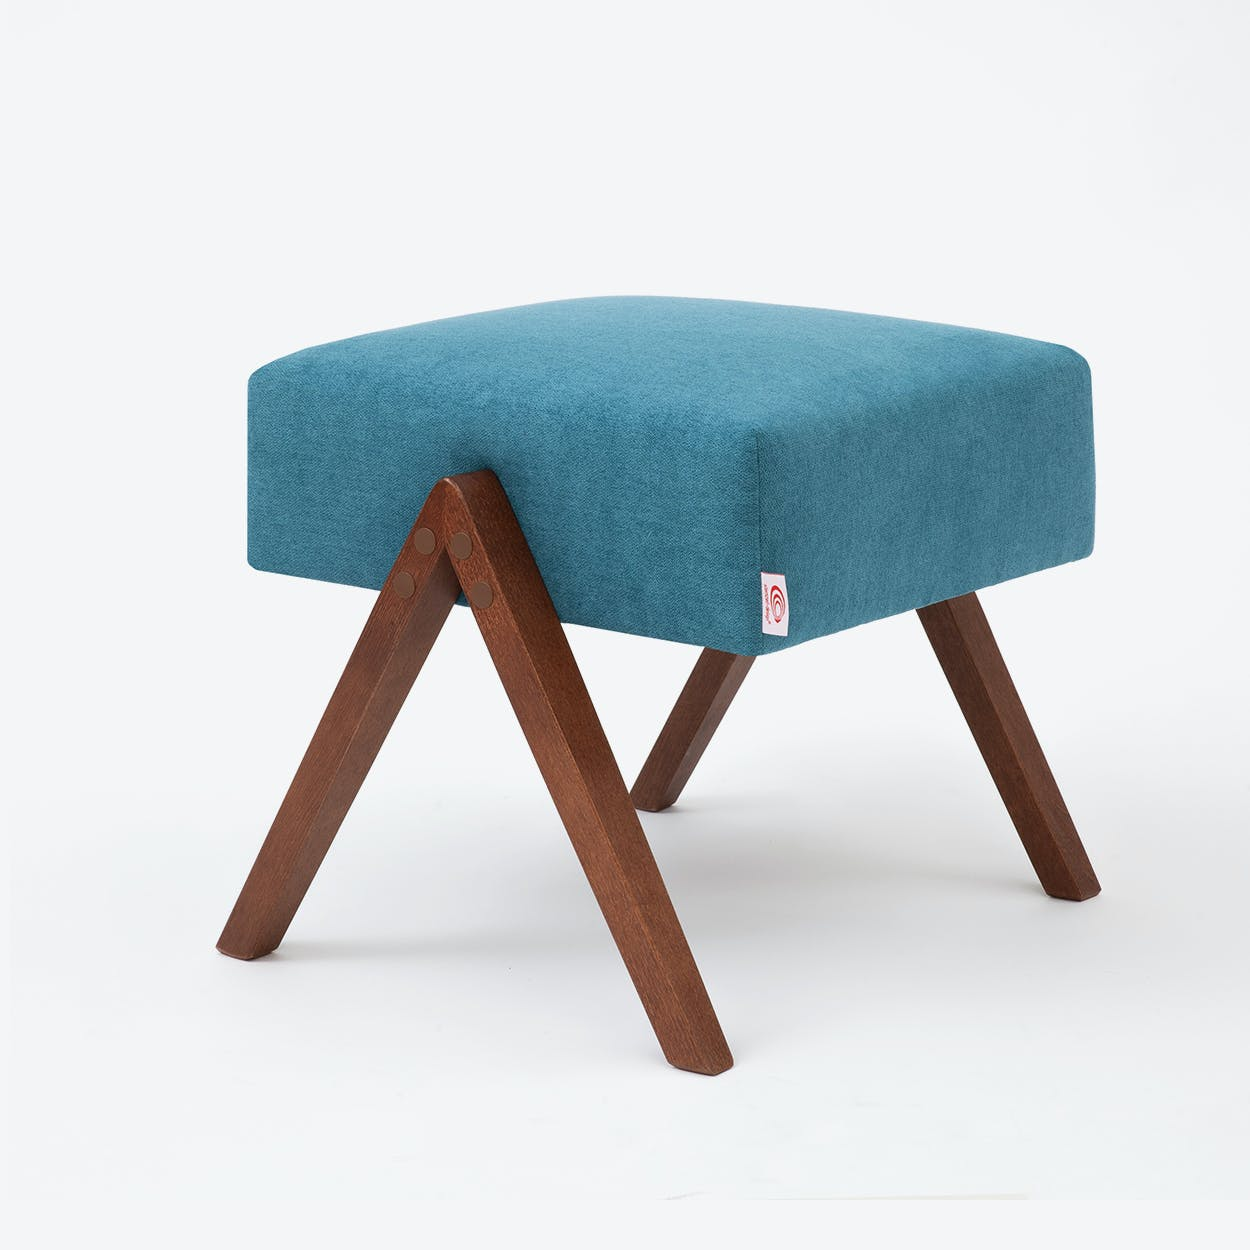 Retrostar Footstool - Basic-Line in Turquoise